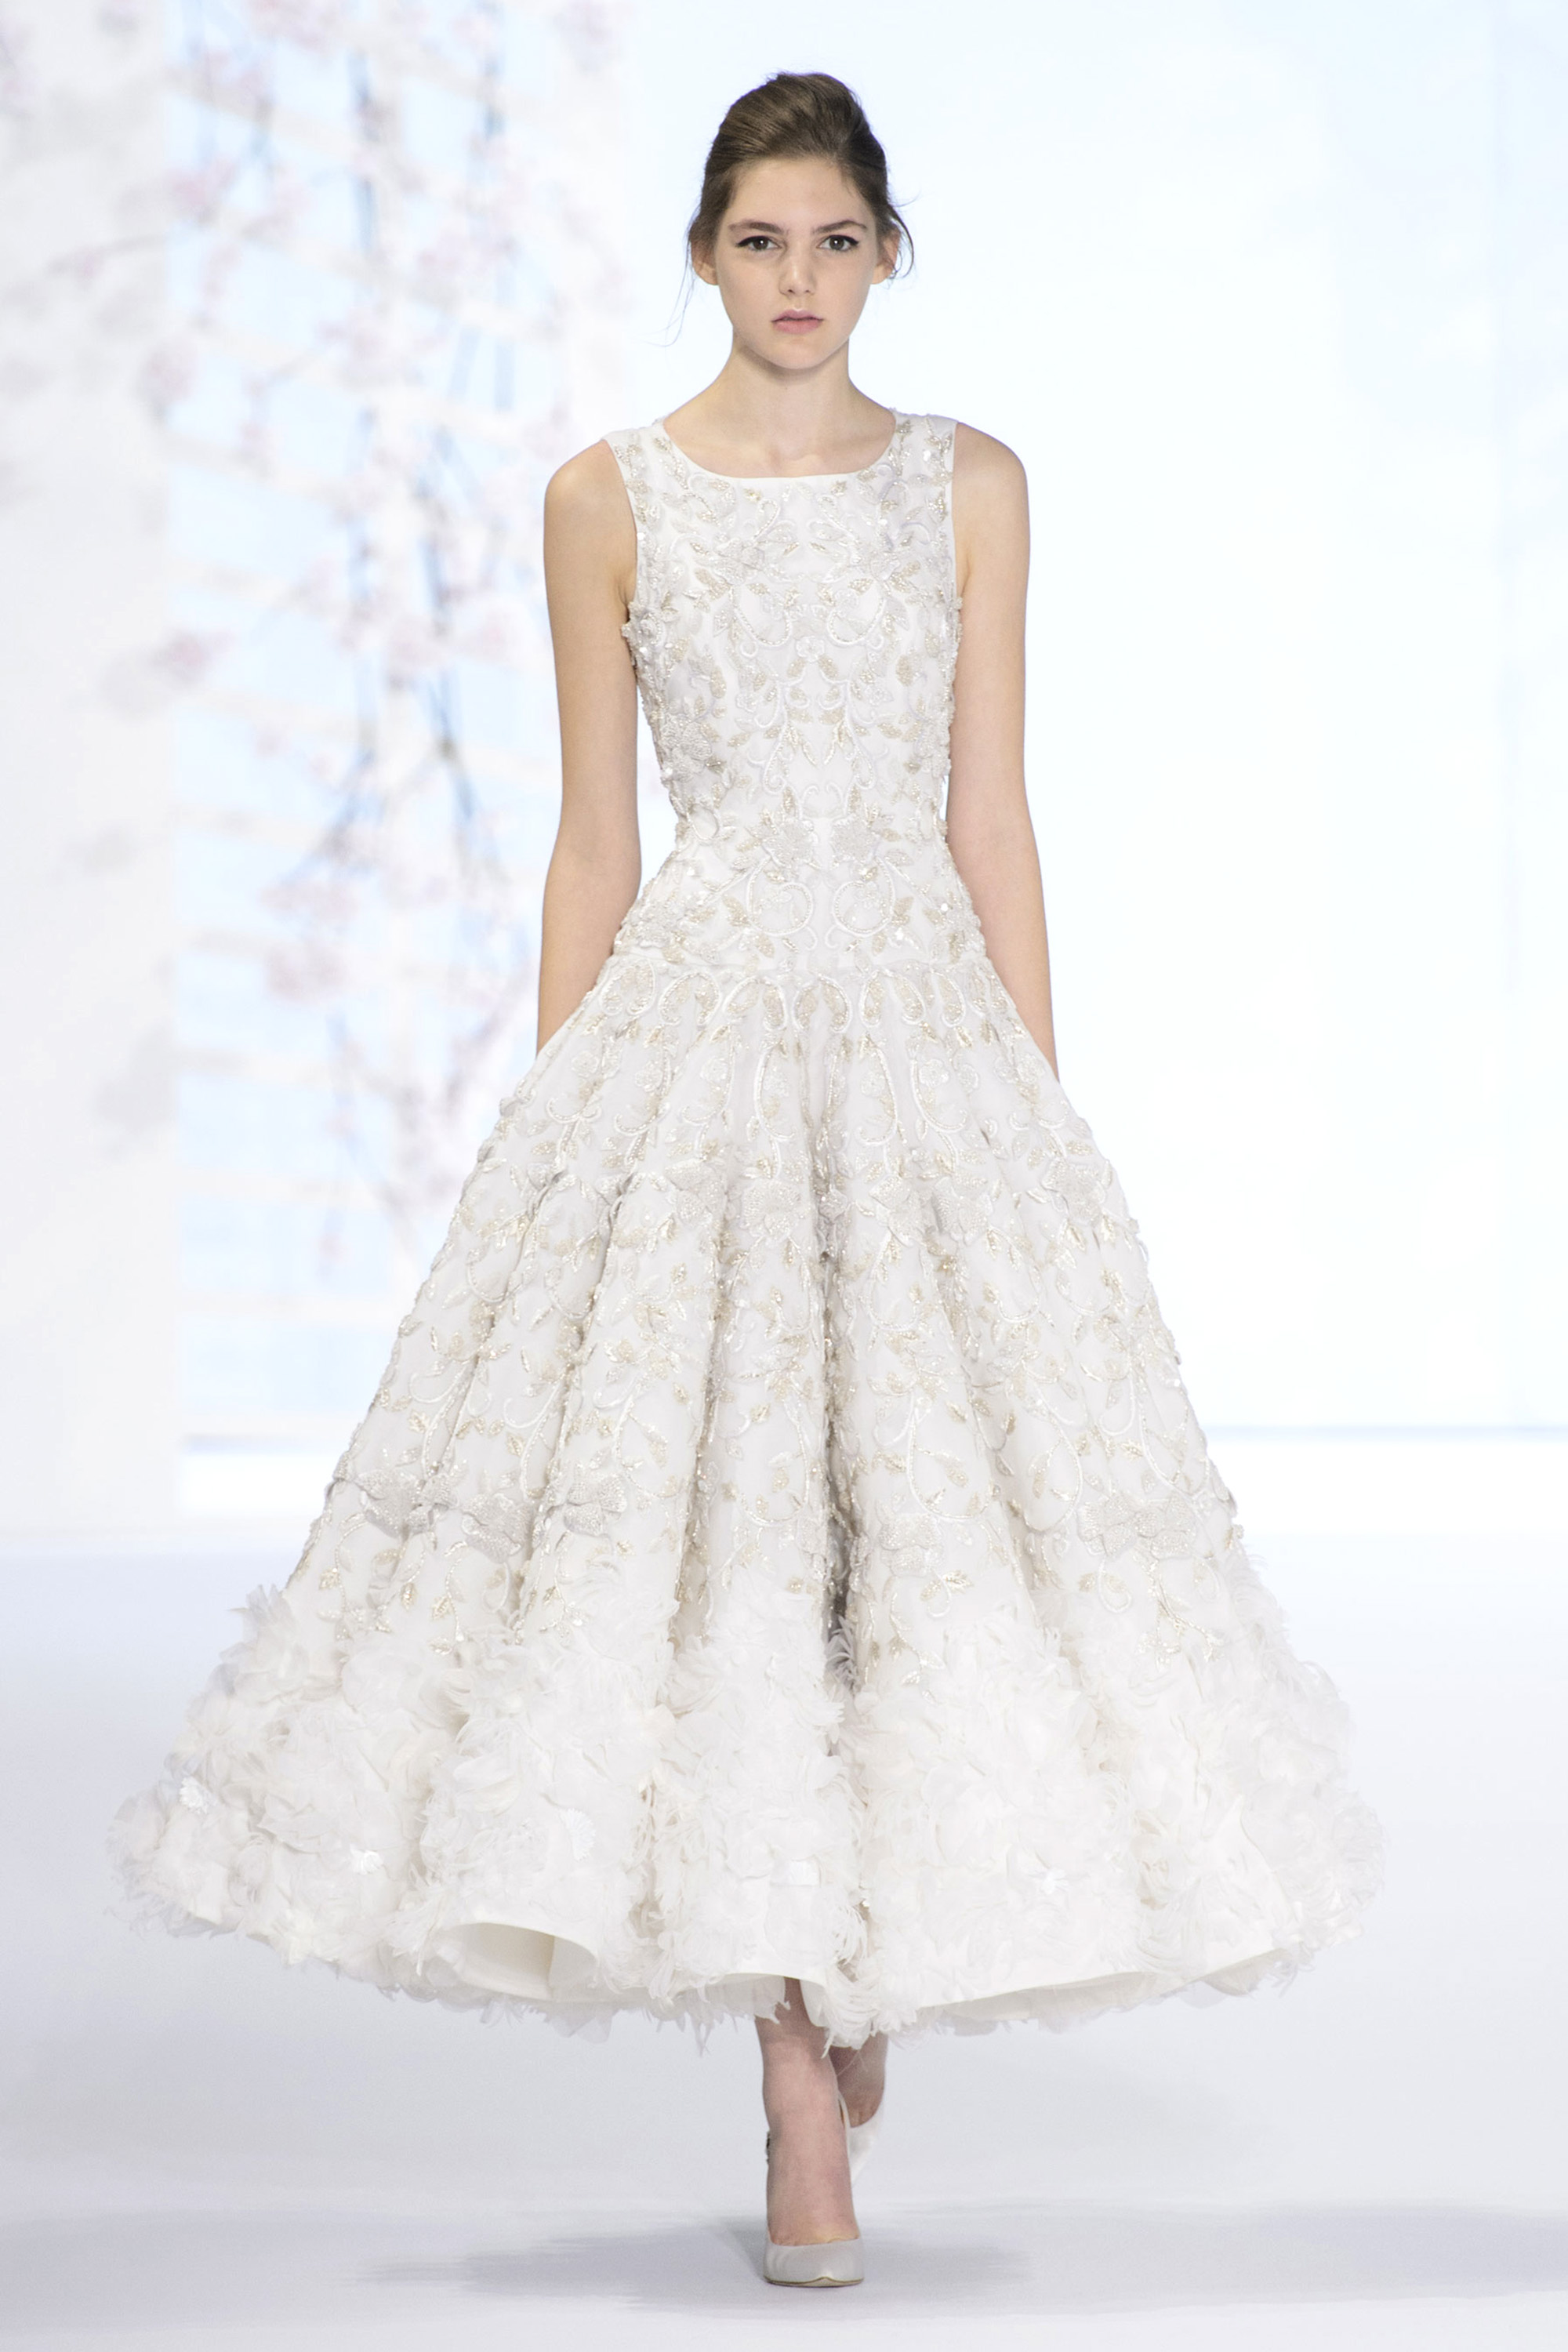 Bridal Inspiration from Haute Couture Spring 2016 - The Best ...